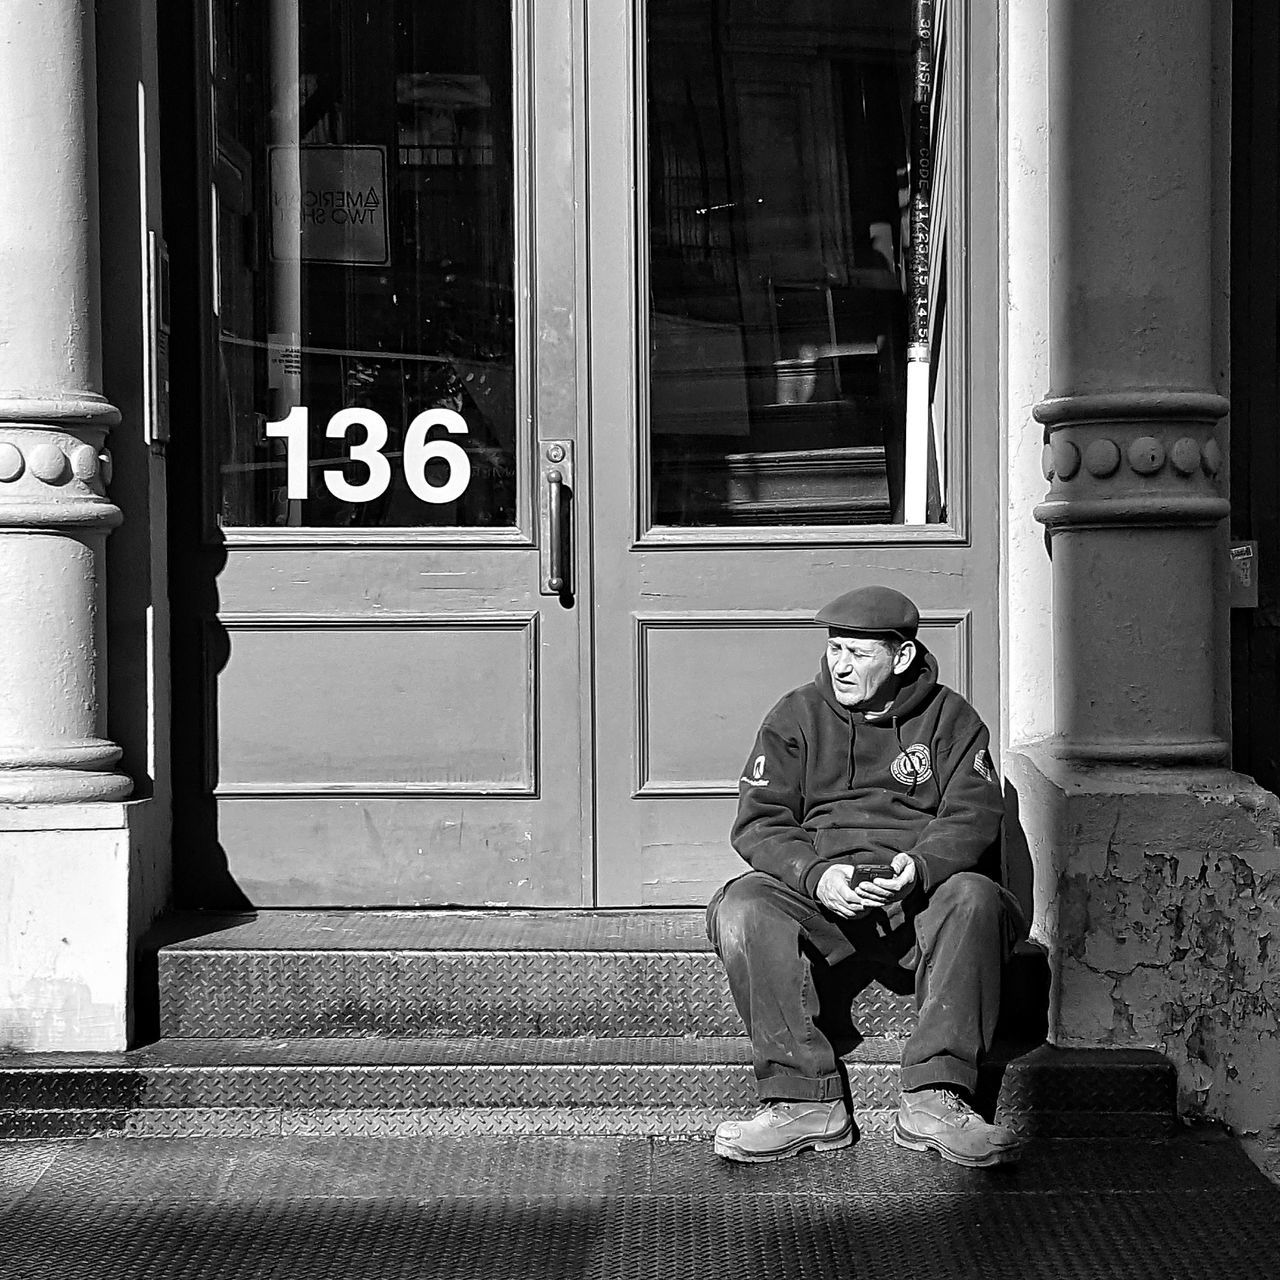 Sittin' & thinkin'. One Man Only Adult Outdoors Day Social Issues Bnw City Life Blackandwhite EyeEm Gallery Black & White Eeyem Photography Urban Lifestyle NYC Street Photography Bnw_captures Mobile Photography EyeEmBestPics Bnw_friday_eyeemchallenge NYC Photography Streetphotography Shootermag_usa NYC EyeEyem Real People One Person